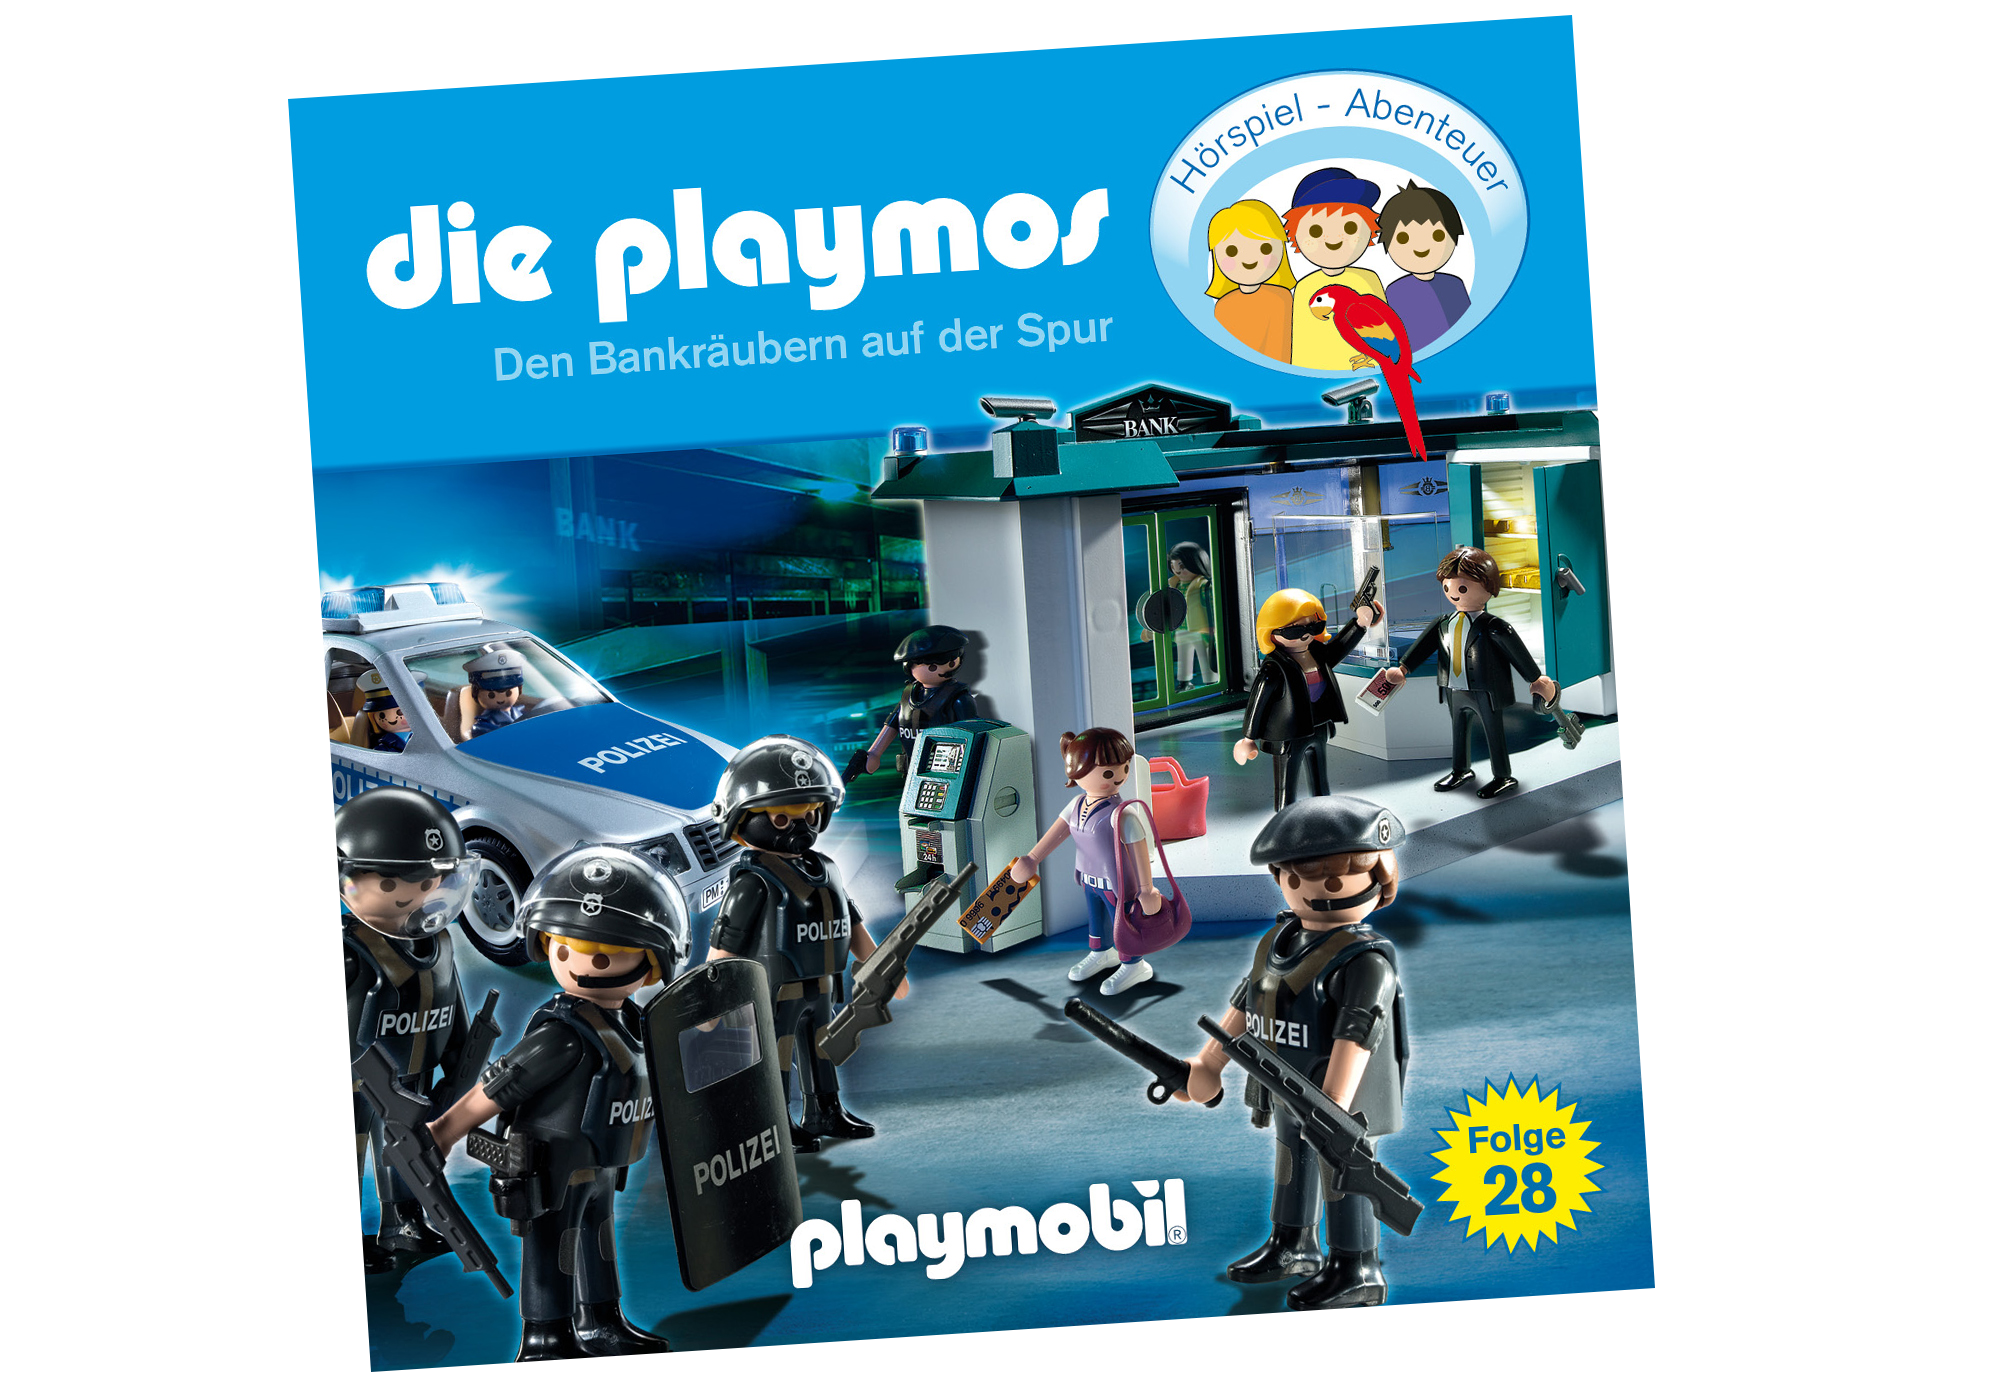 http://media.playmobil.com/i/playmobil/80344_product_detail